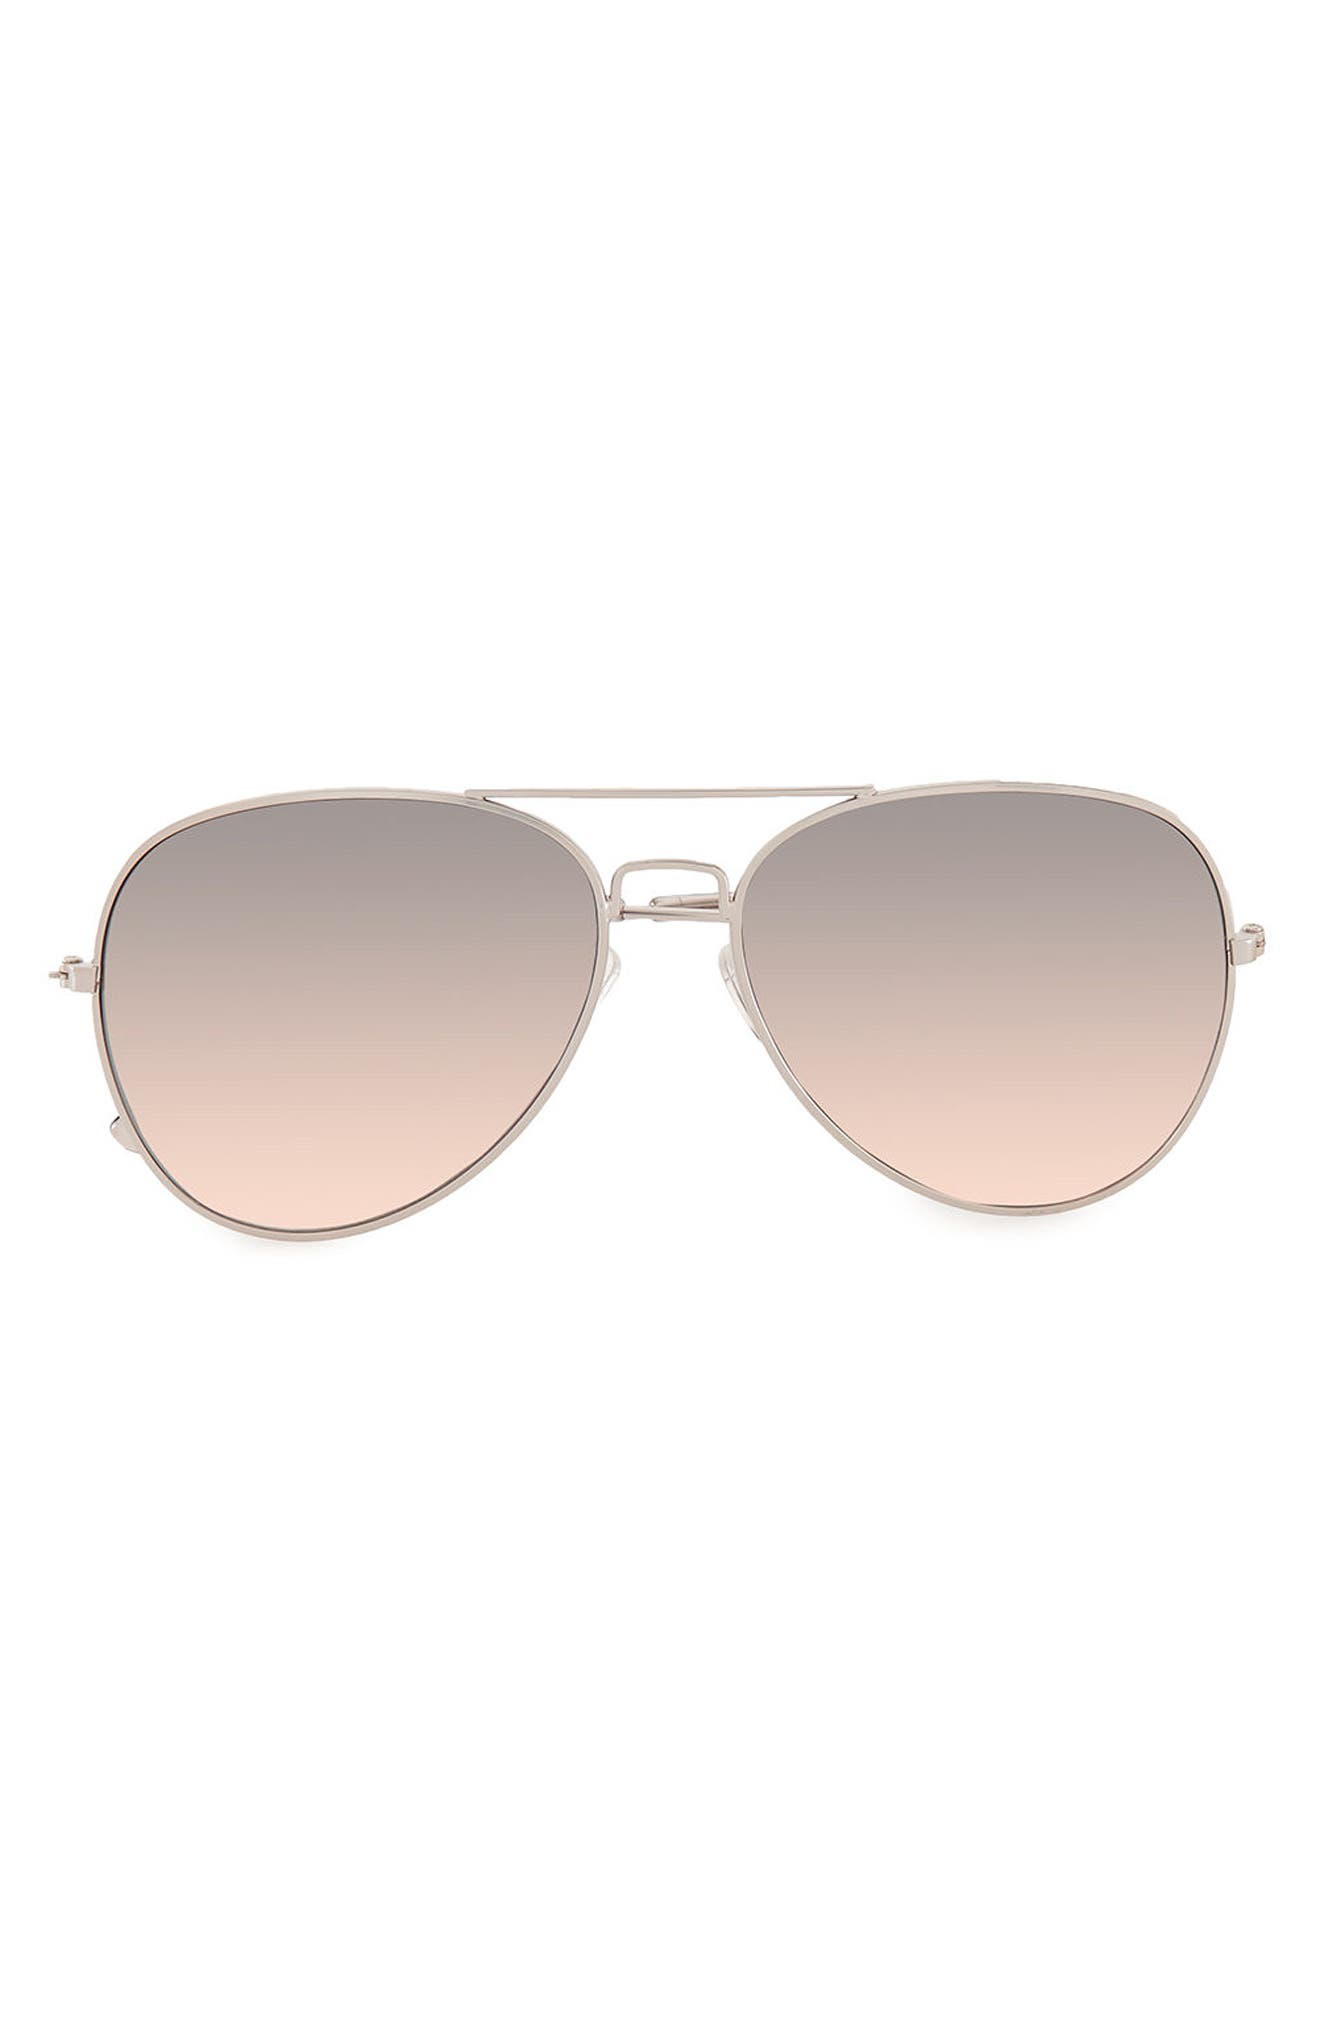 TOPMAN 58mm Mirrored Aviator Sunglasses